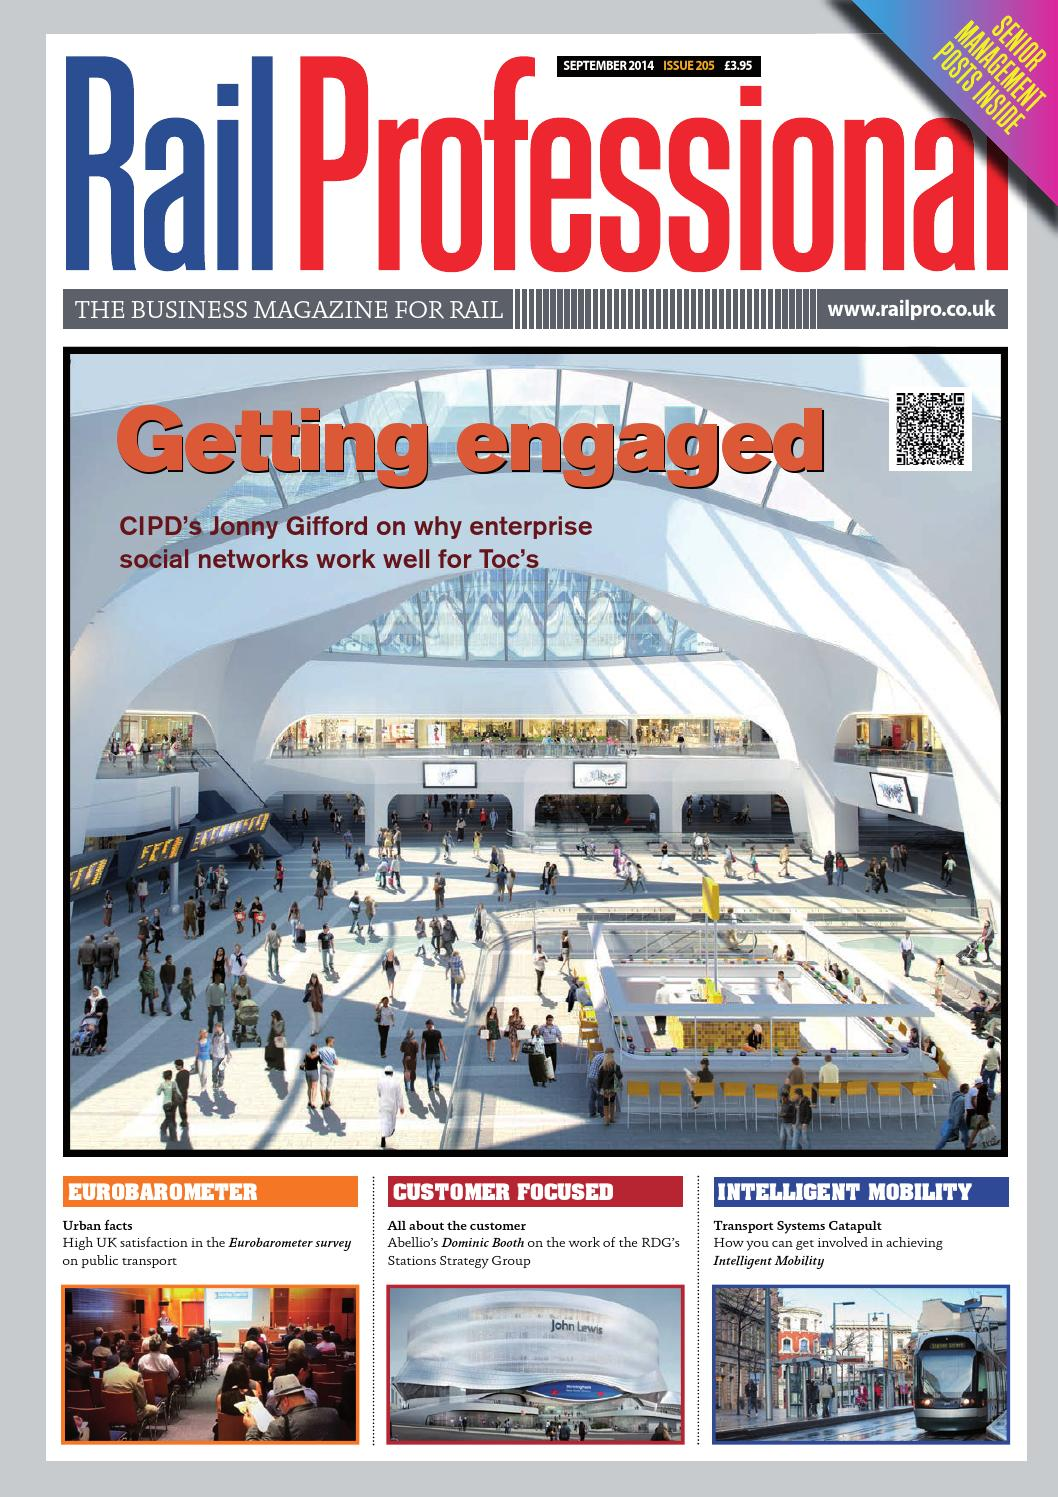 Rail Professional September 2014 issue by Rail Professional Magazine